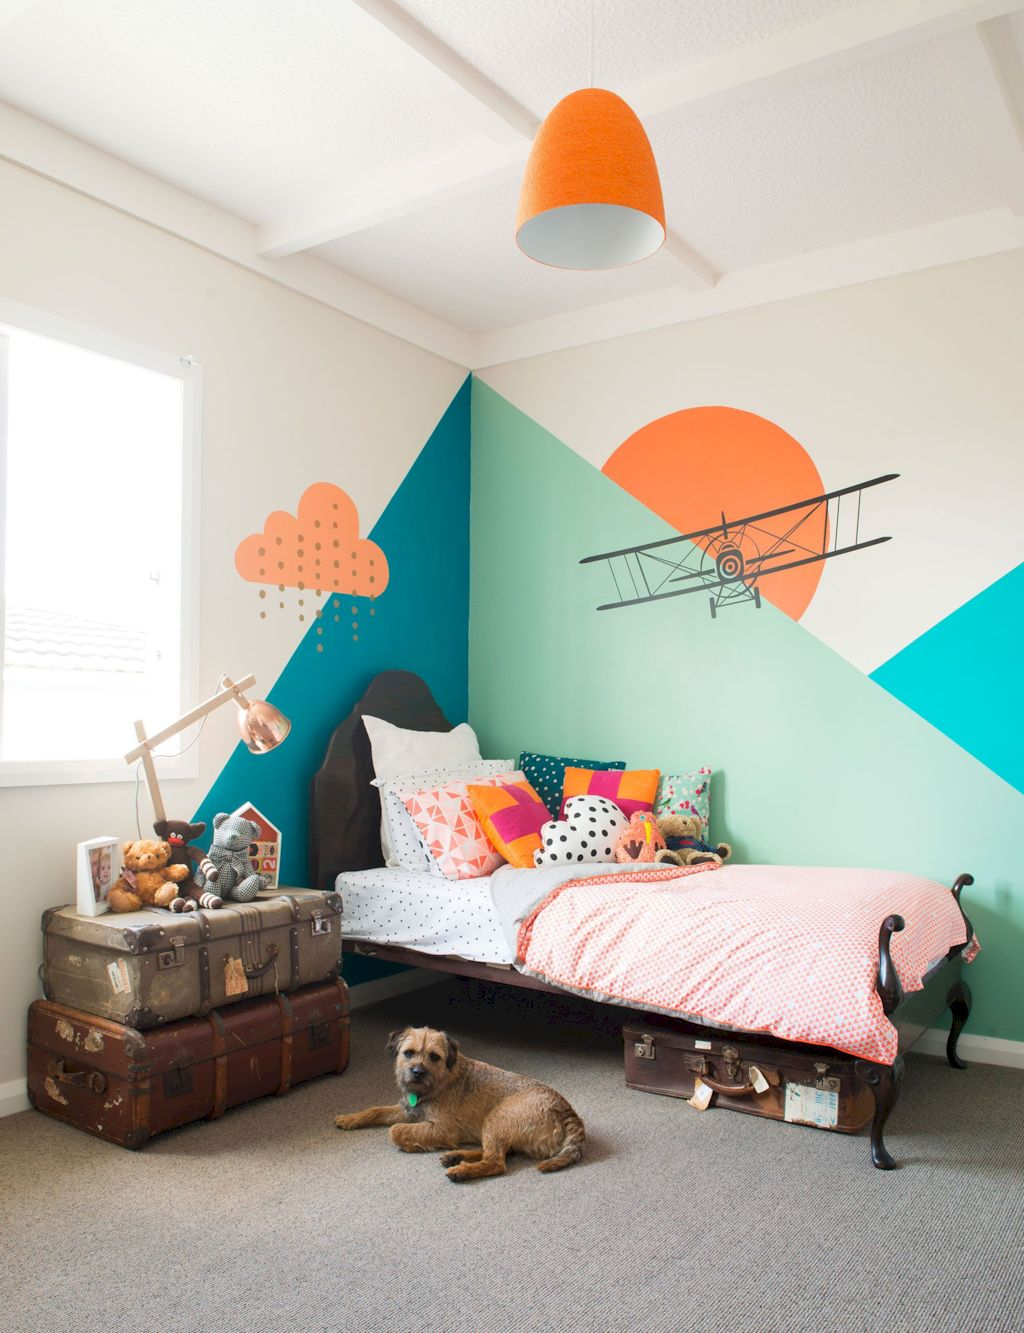 Aesthetic Kid Rooms with Geometric Wall Themes - SHAIROOM.COM